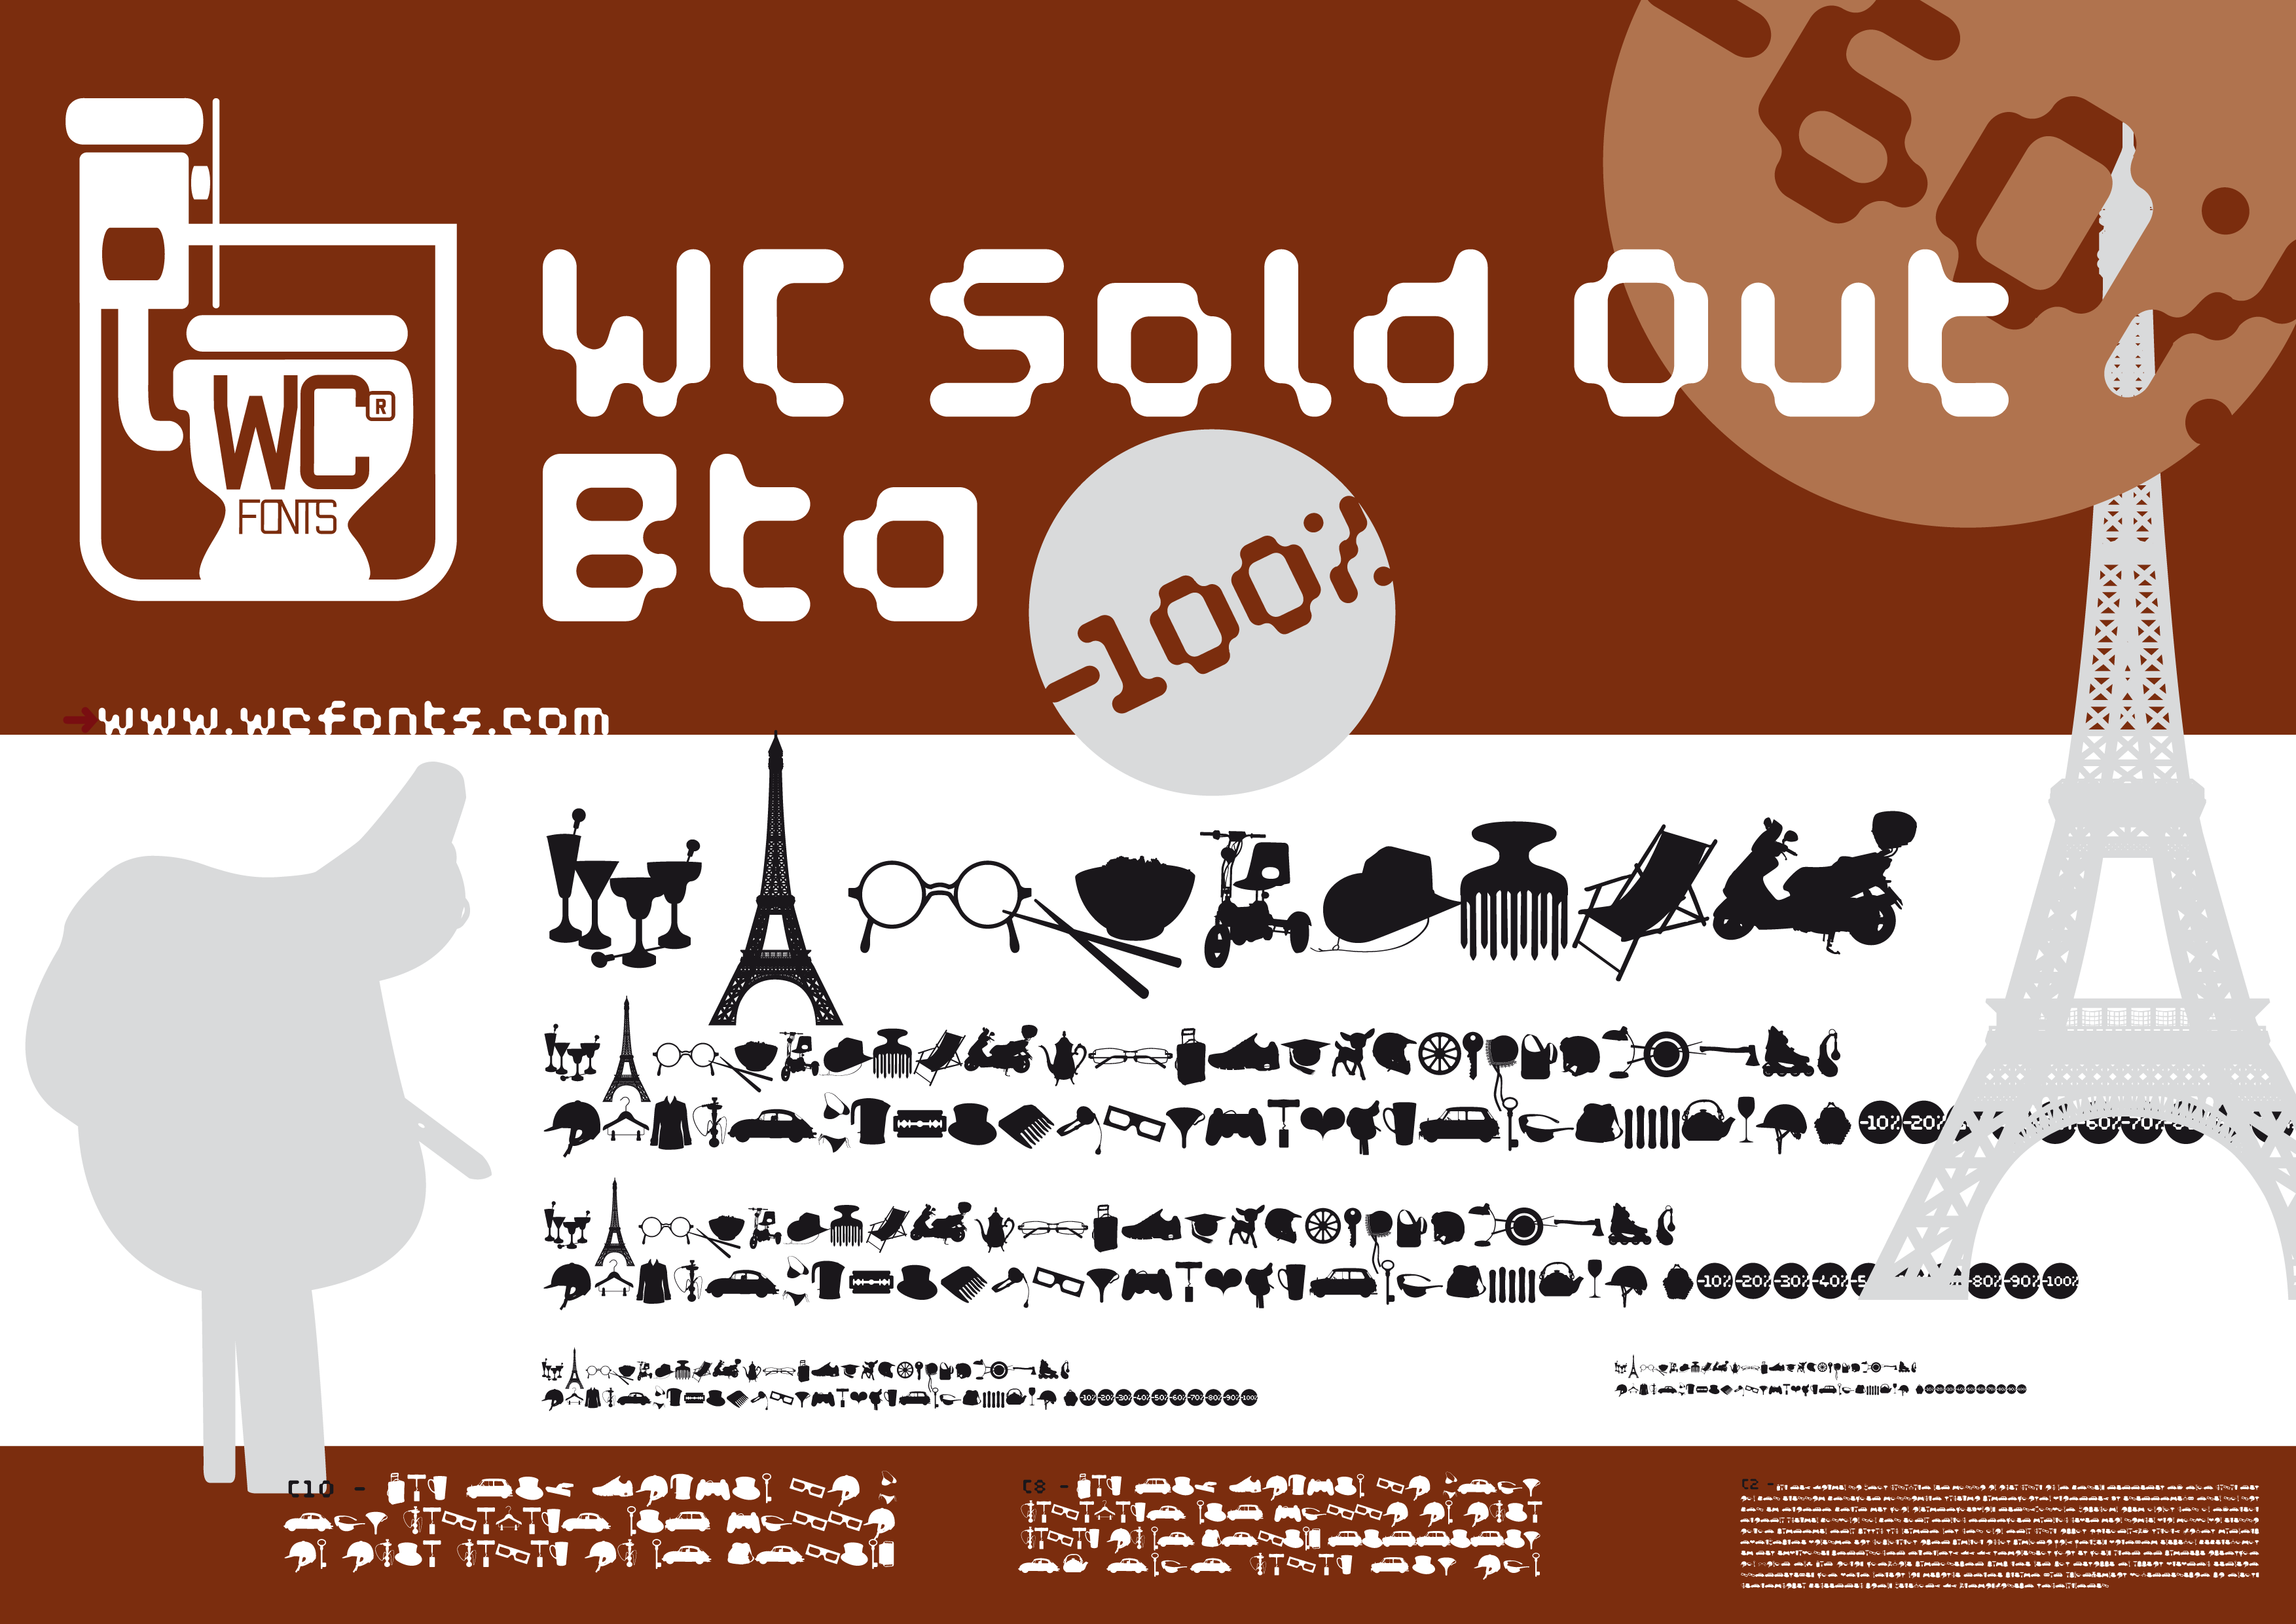 WC Sold Out A Bta